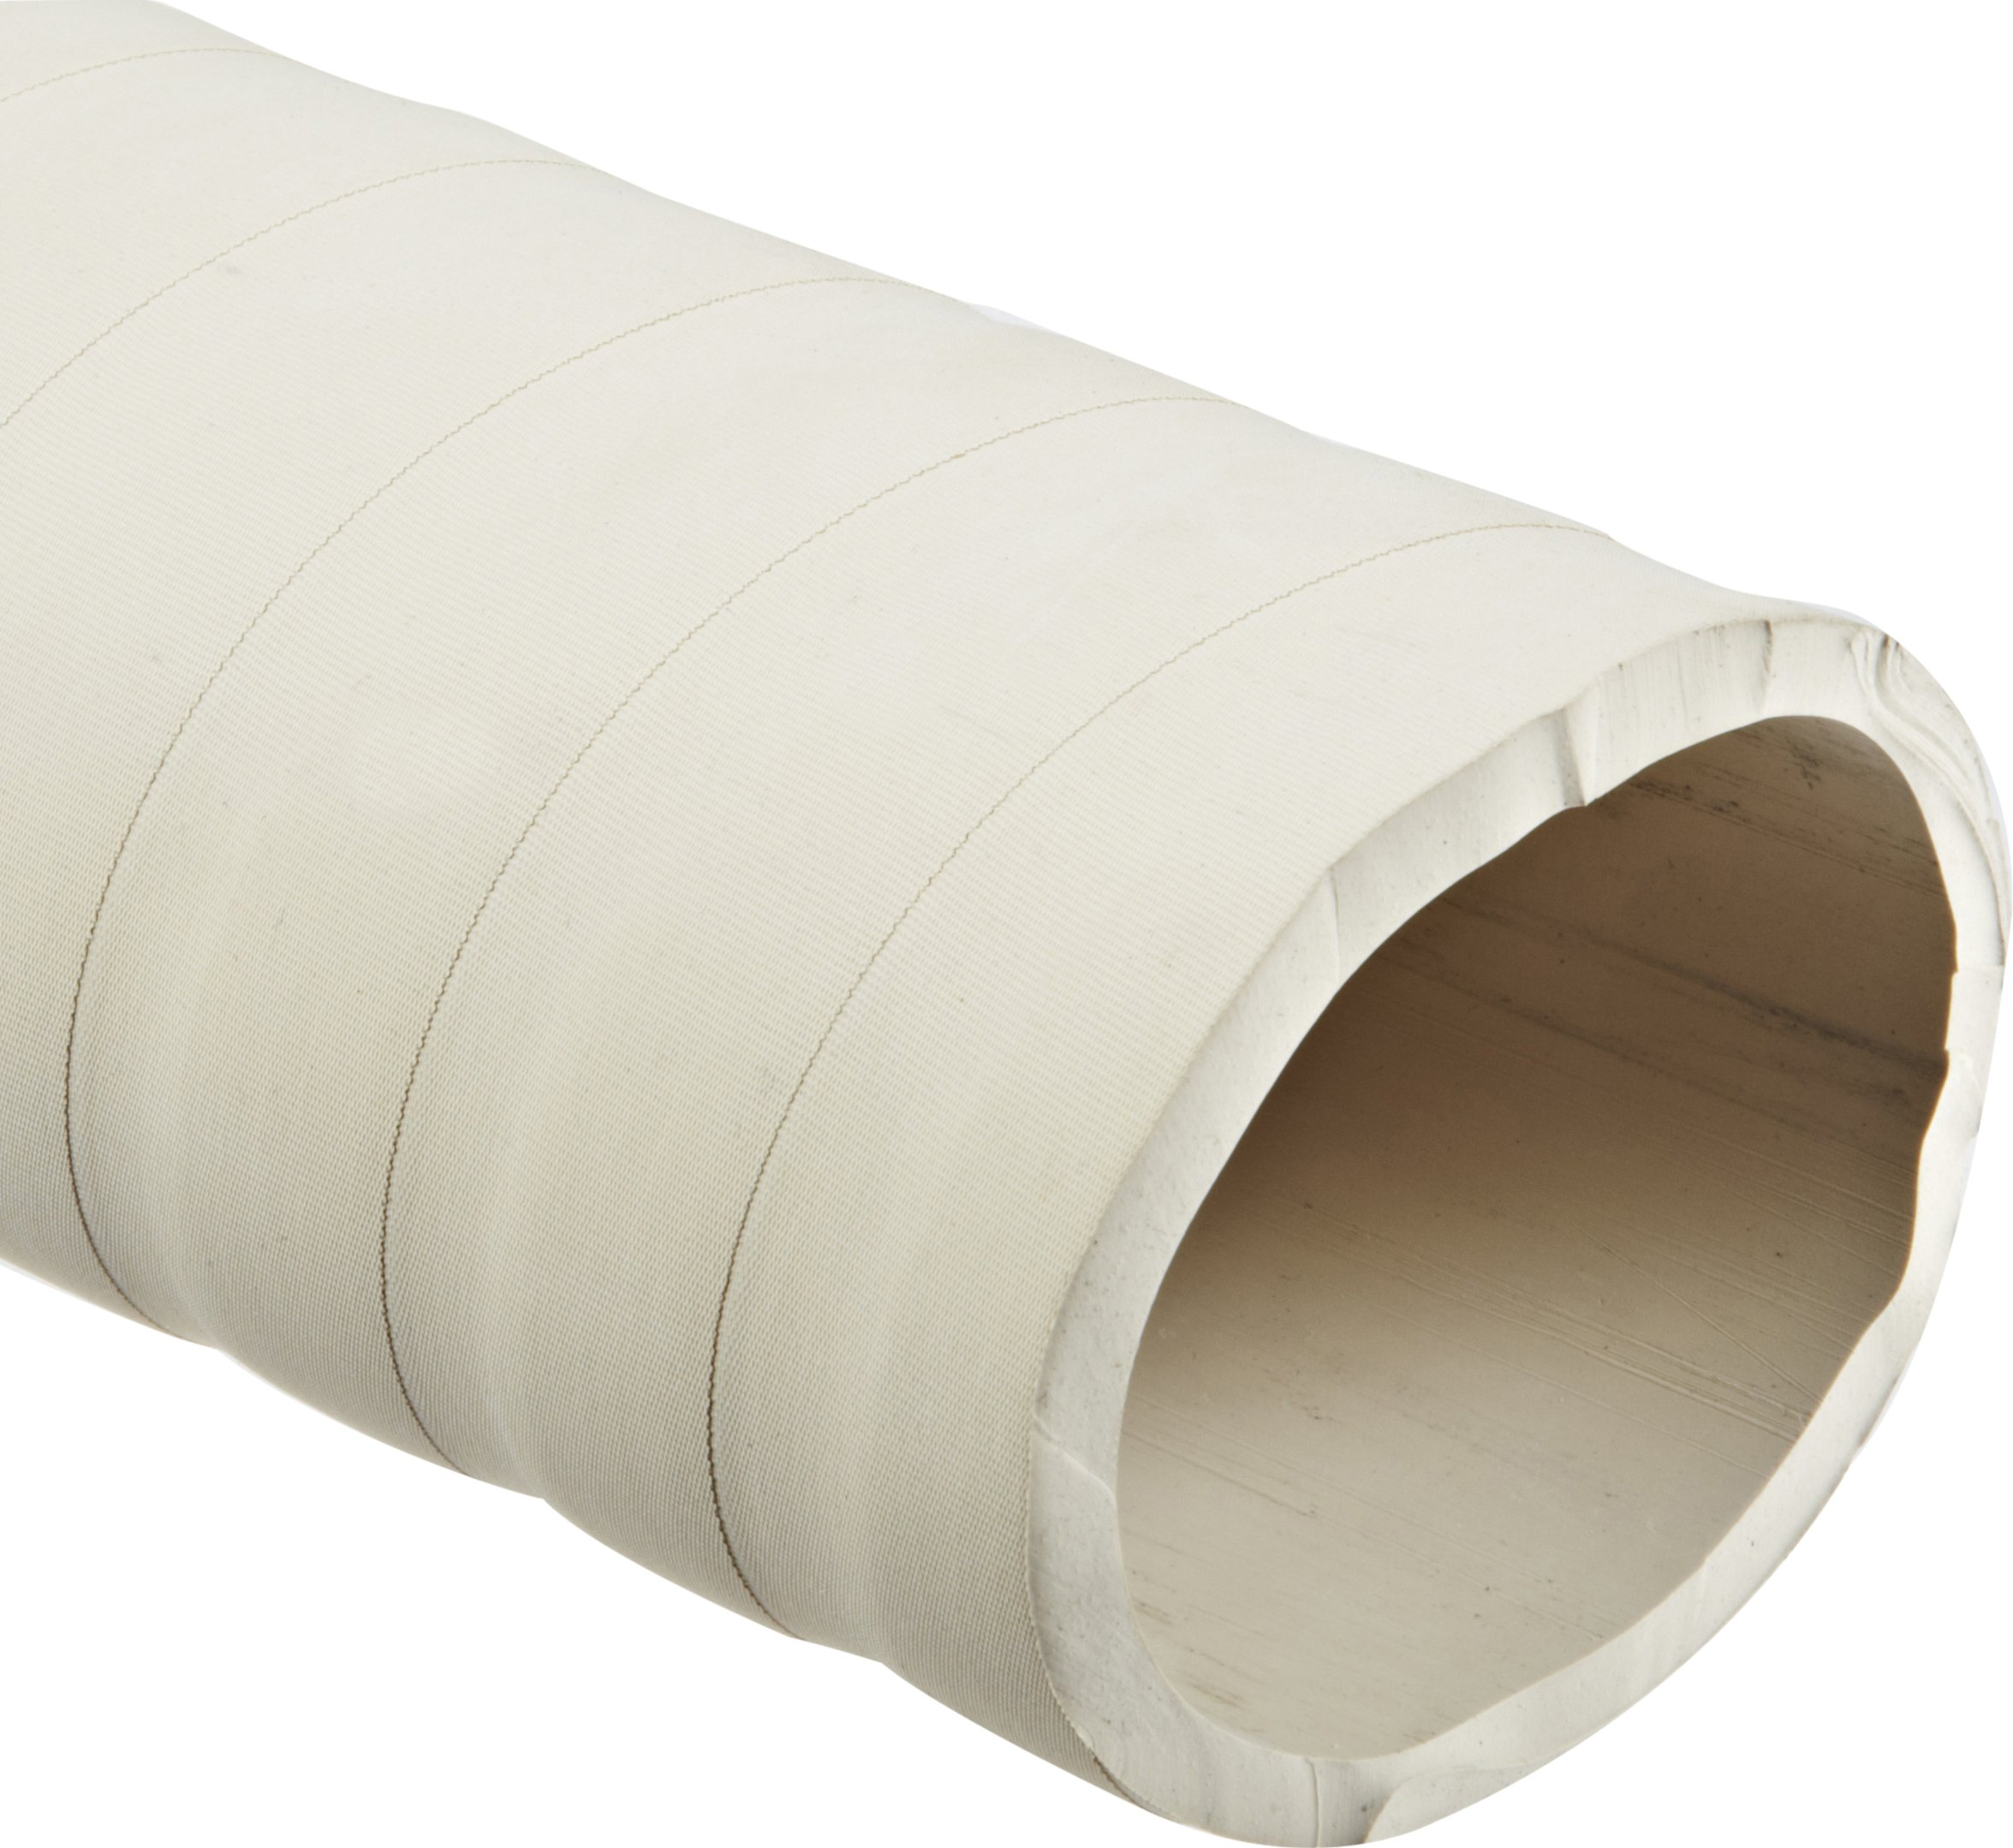 Abrasion-Resistant Gum Rubber Tubing, Very Flexible, Tan, Opaque, 45A Durometer, 2-1/4'' ID, 2-3/4'' OD, 1/4'' Wall, 12' Length